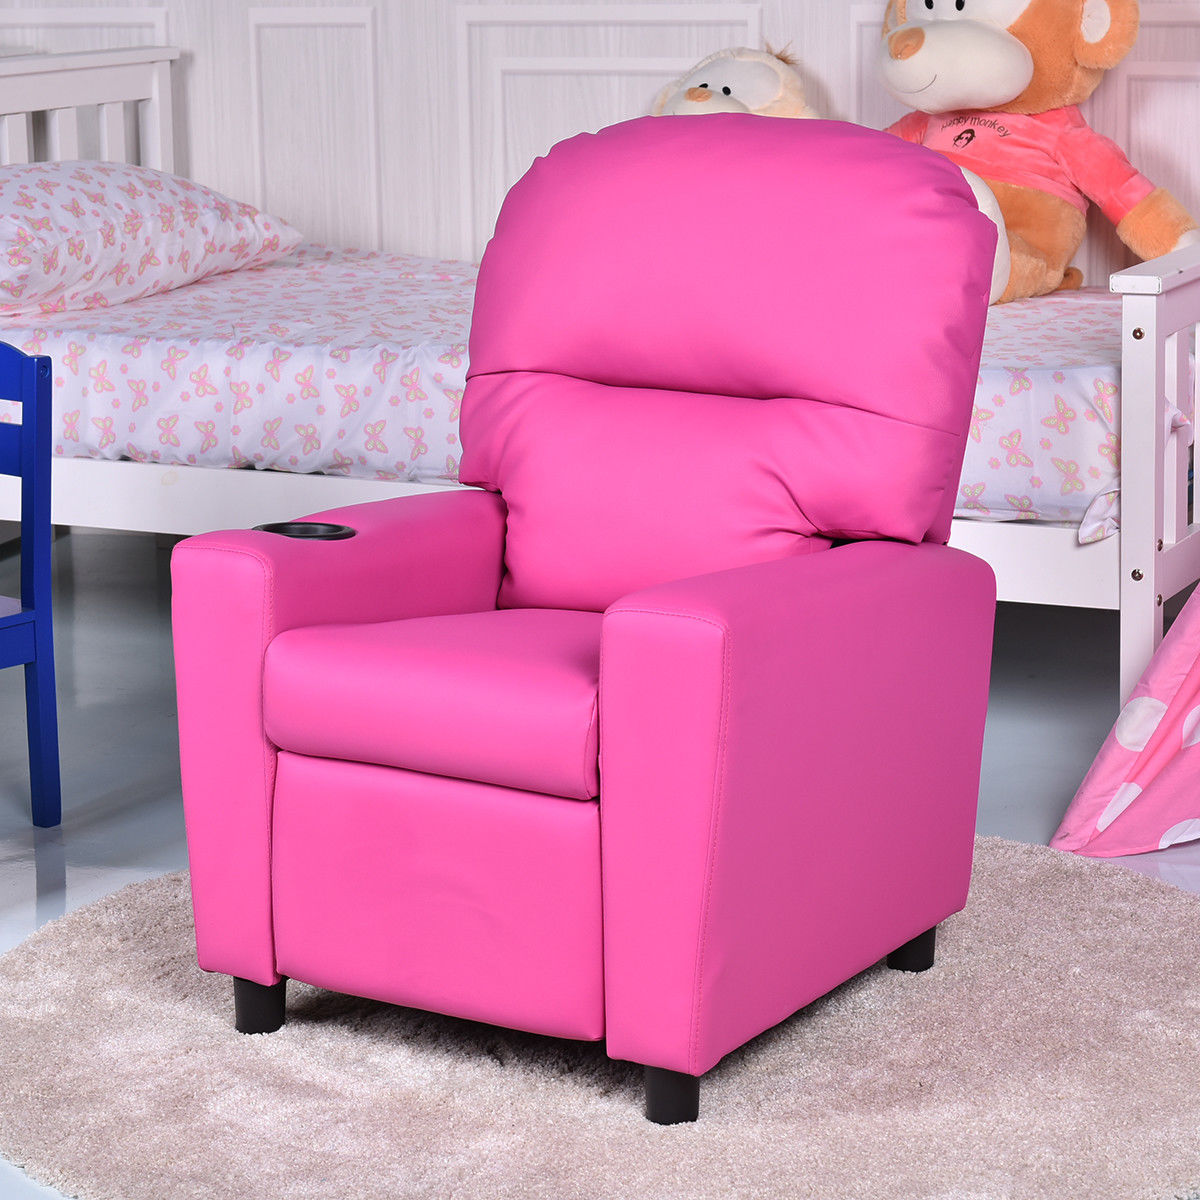 Gymax Kids Armchair Recliner Childrenu0027s Furniture Sofa Seat Couch Chair  W/Cup Holder